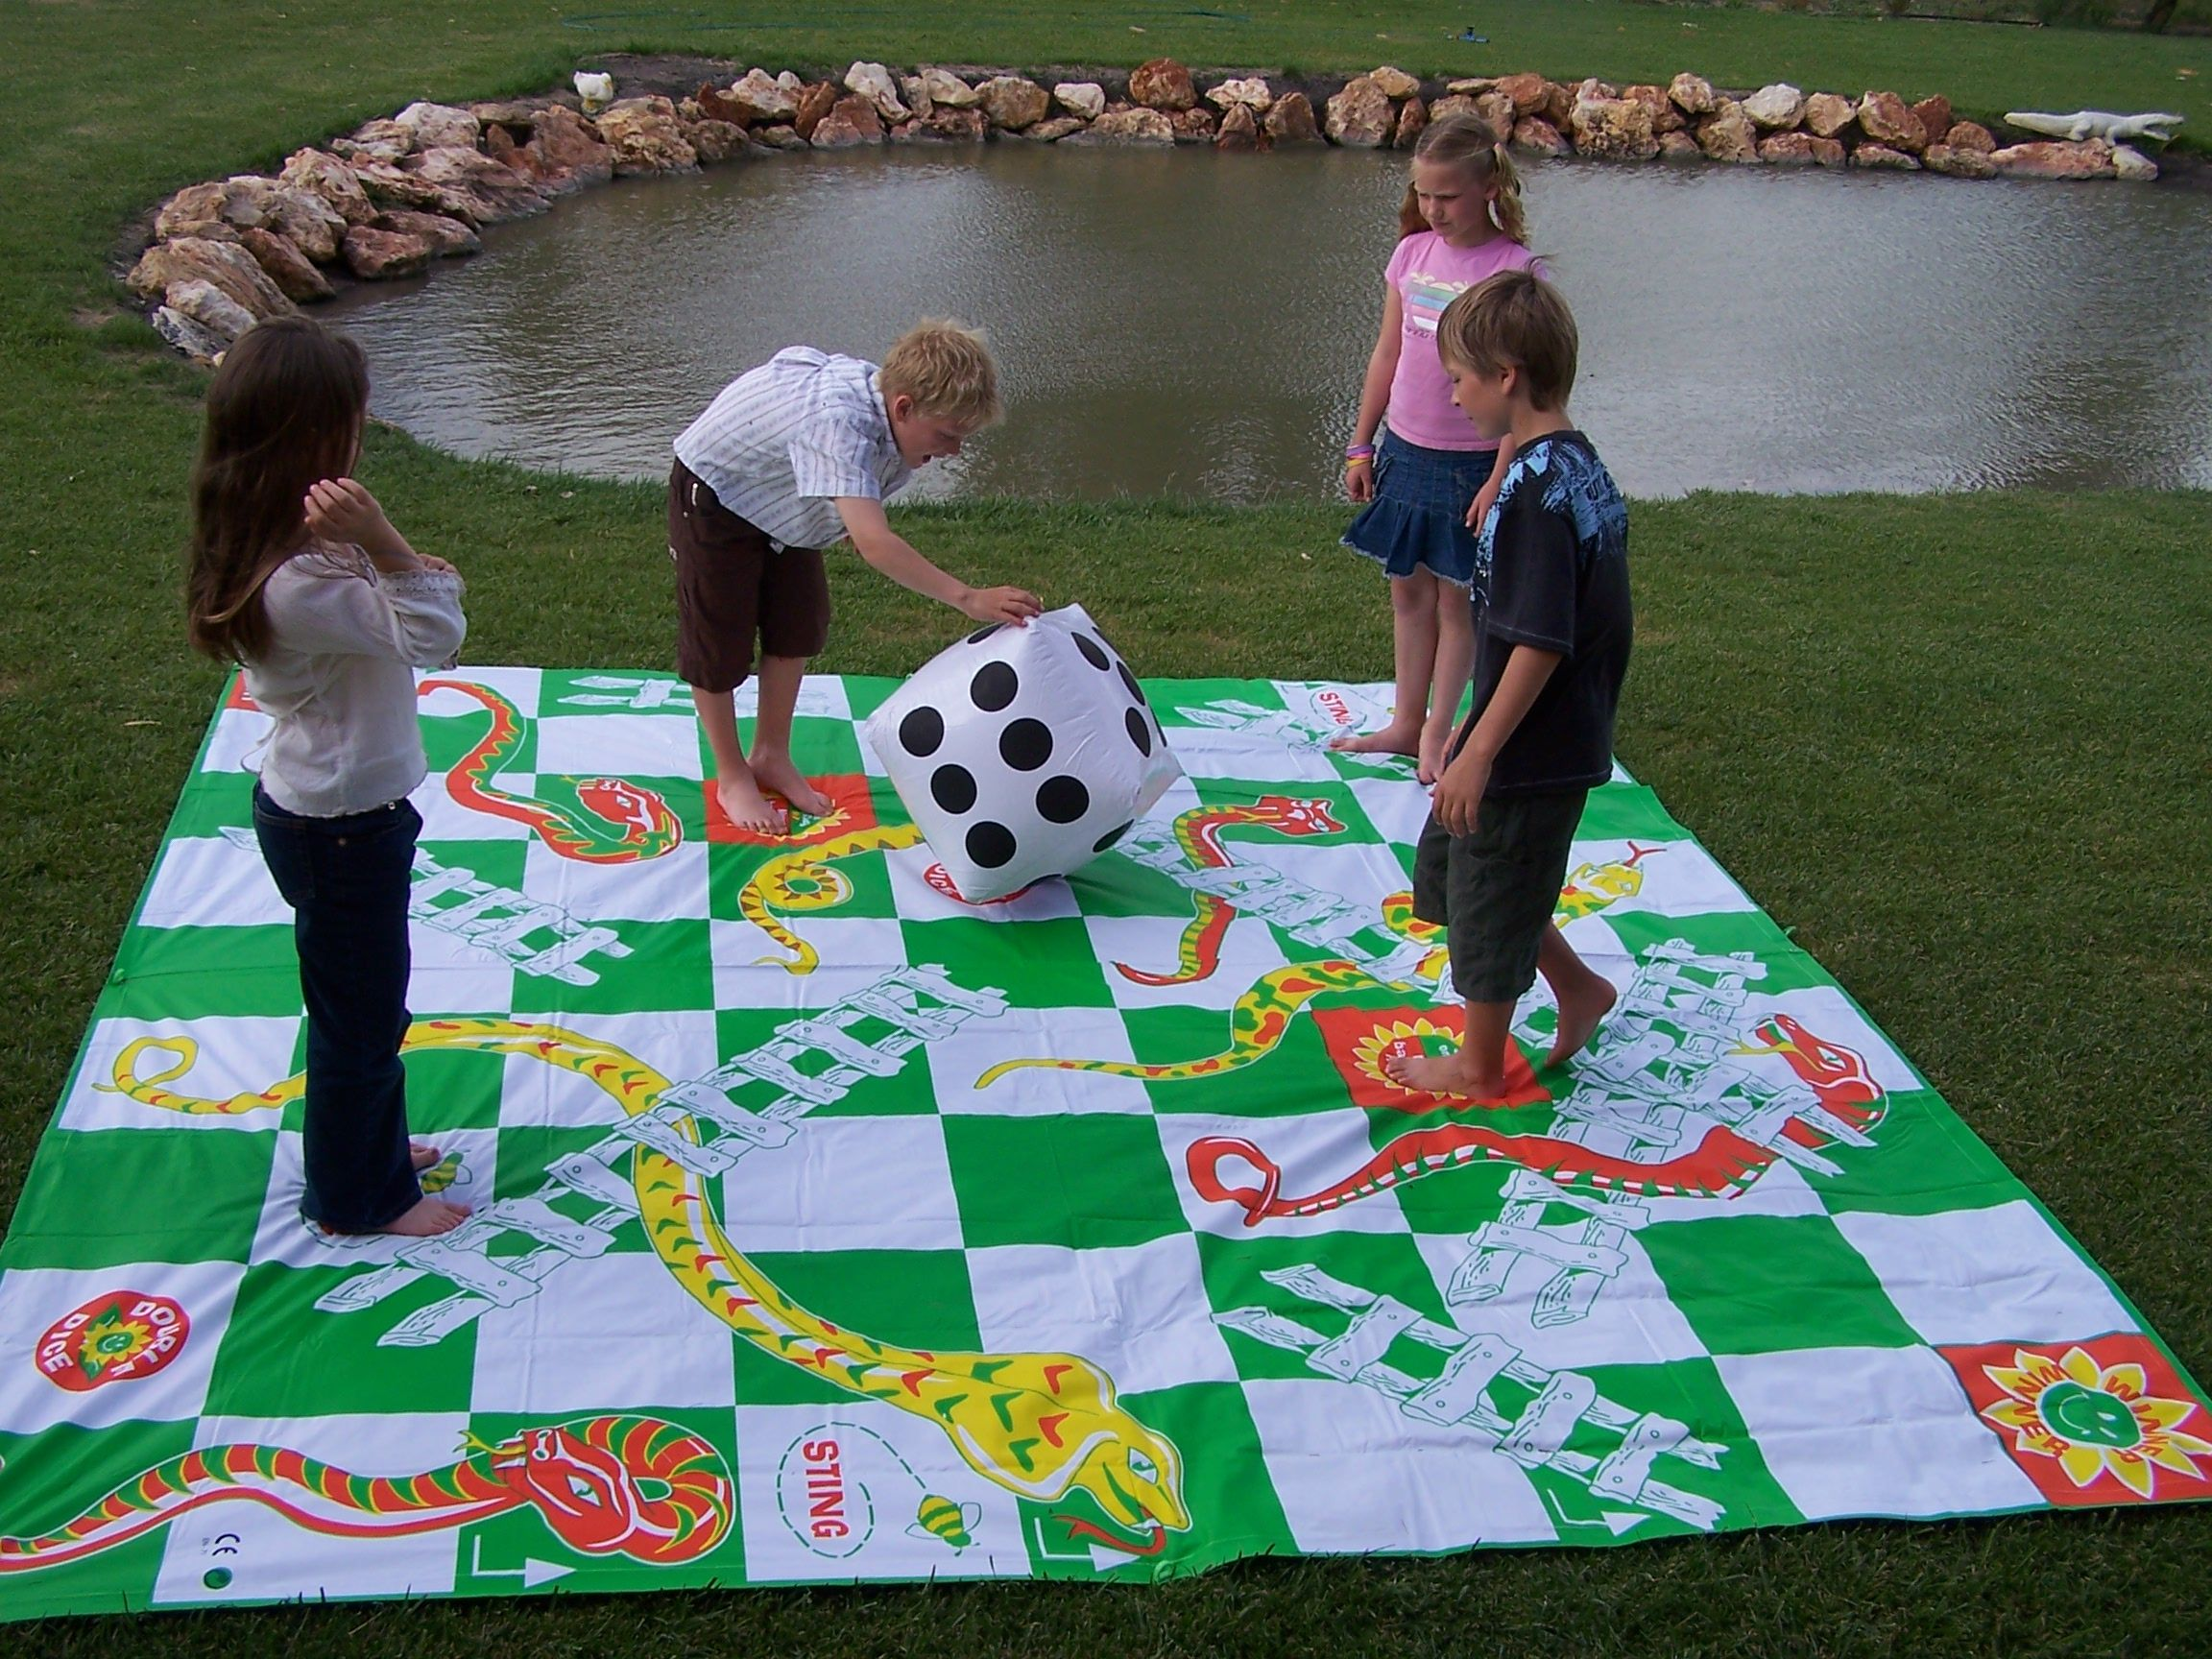 Pictures images snakes and ladders board game template wallpaper - Top 10 Programs Teens Want The Library